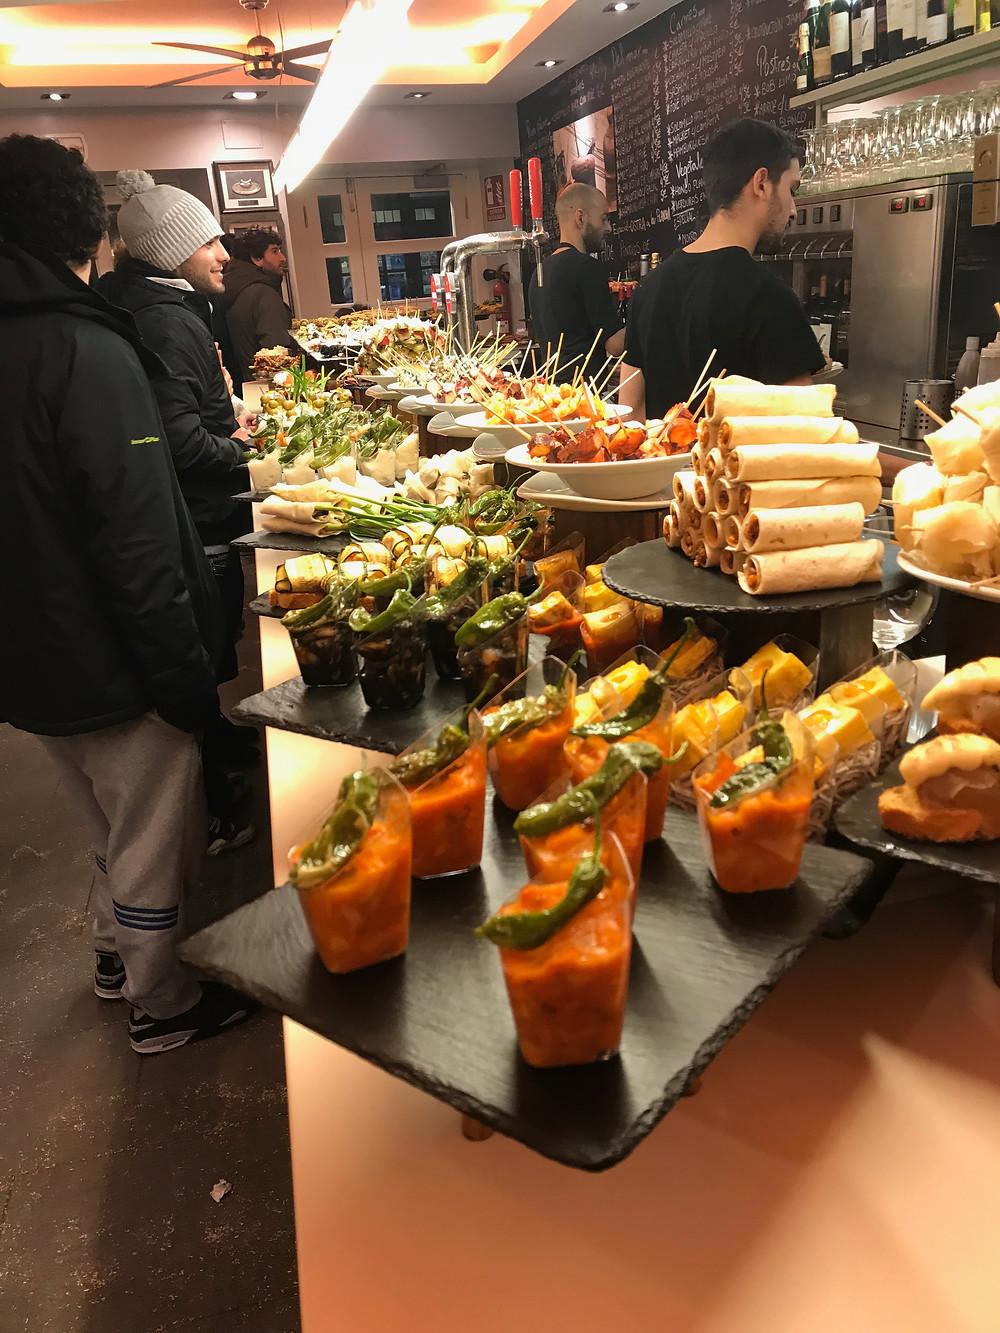 Behold the world's greatest appetizer-pintxos.